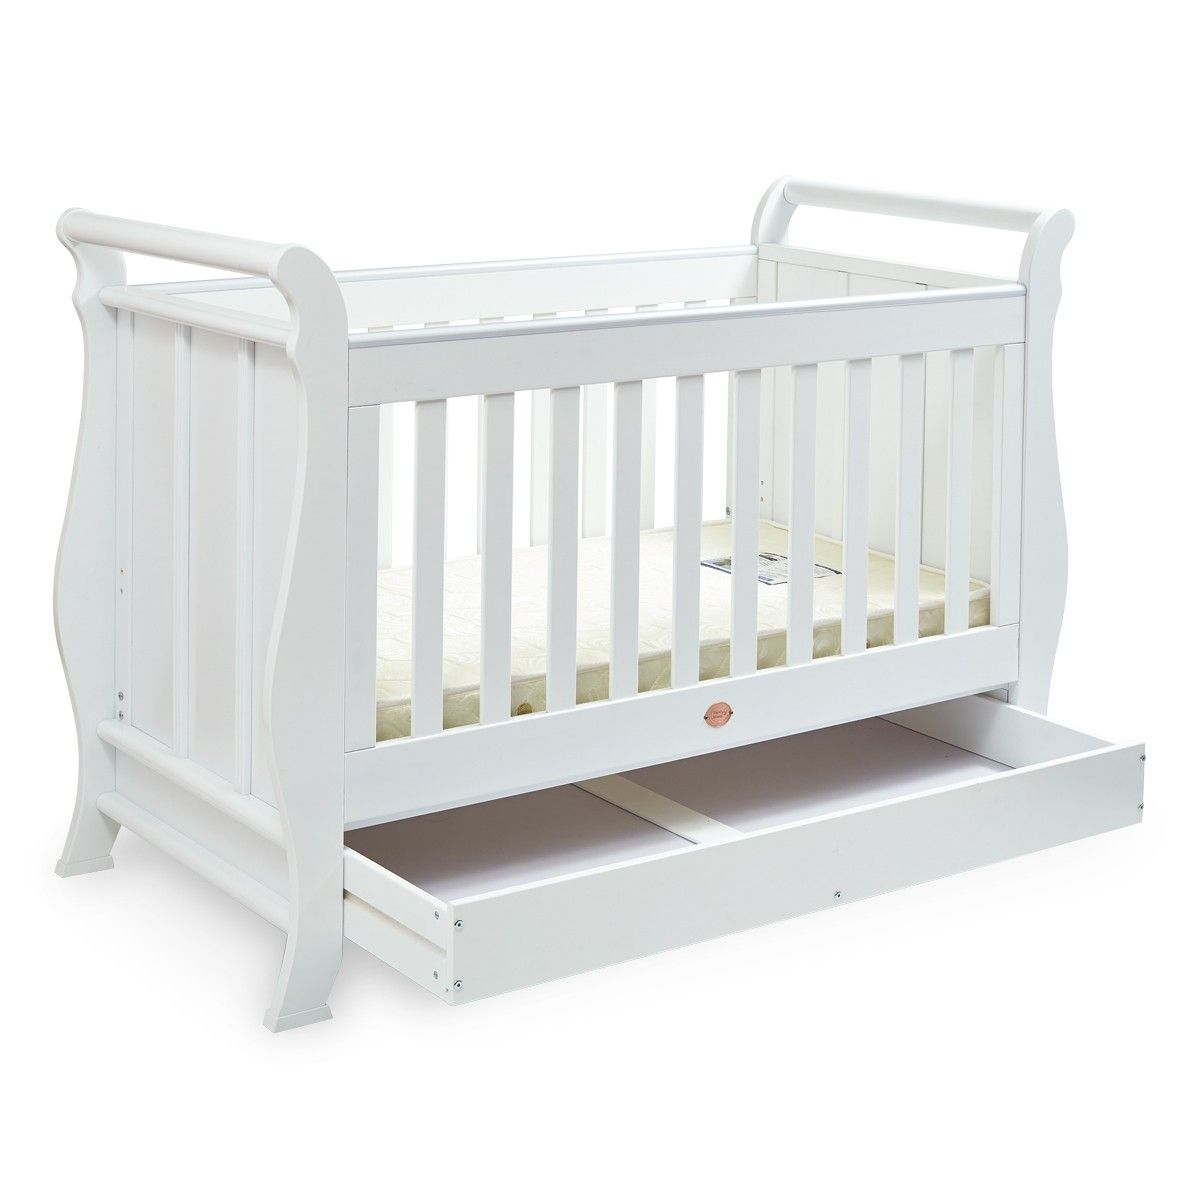 Sleigh Cot Bed Nursery Furniture Sets